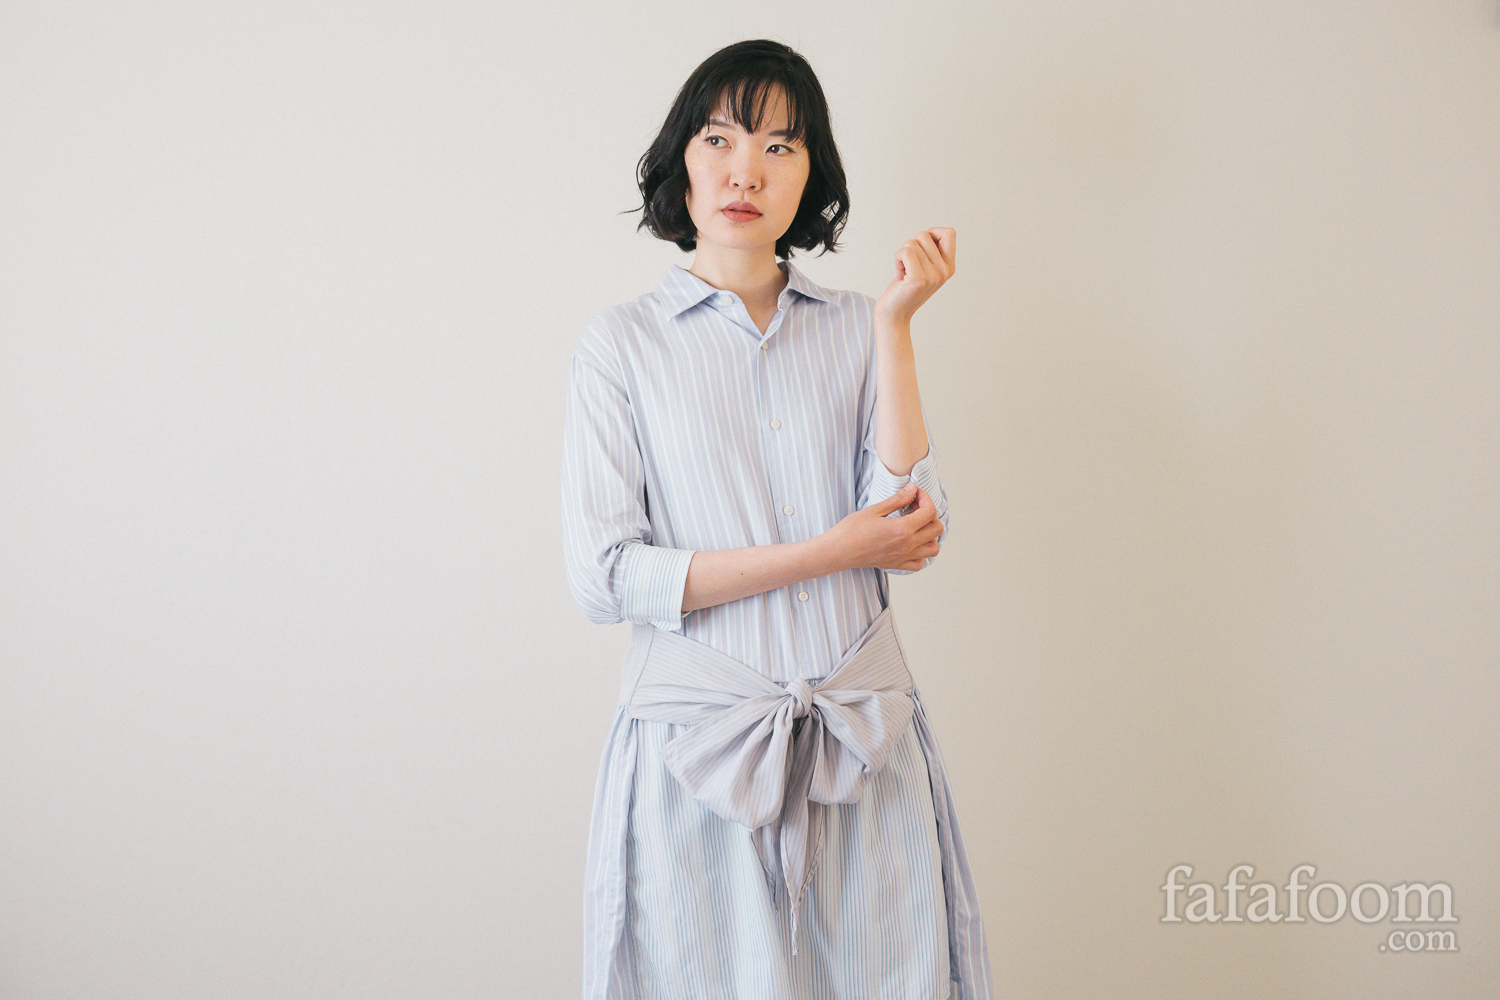 Styling: DIY Shirt Dress with Bow Waist Tie - DIY Fashion Garment | fafafoom.com